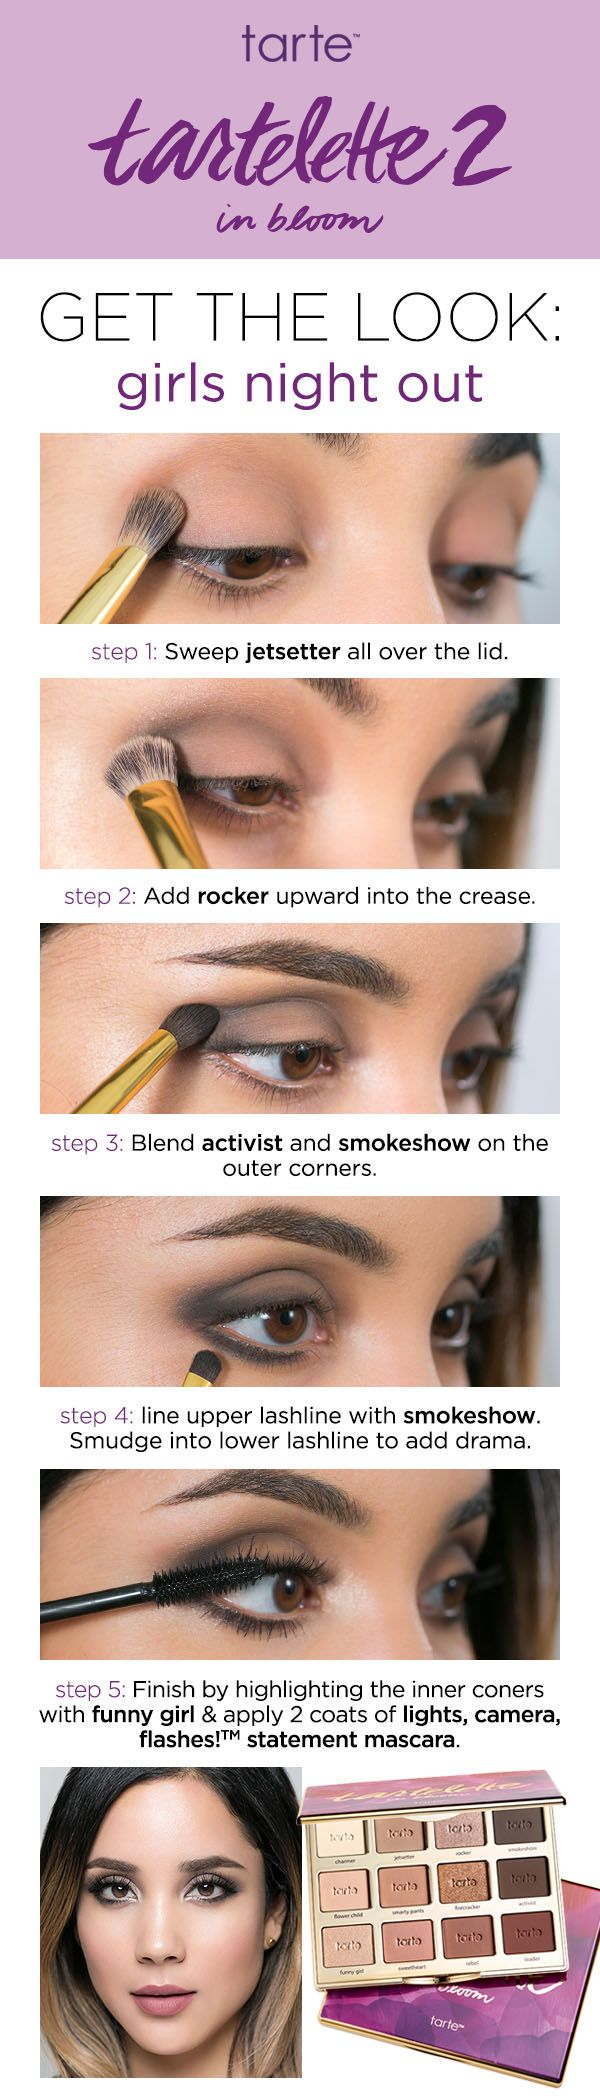 Howto Get A Sultry Evening Look For Your Next Girls Night Out Using Tarte